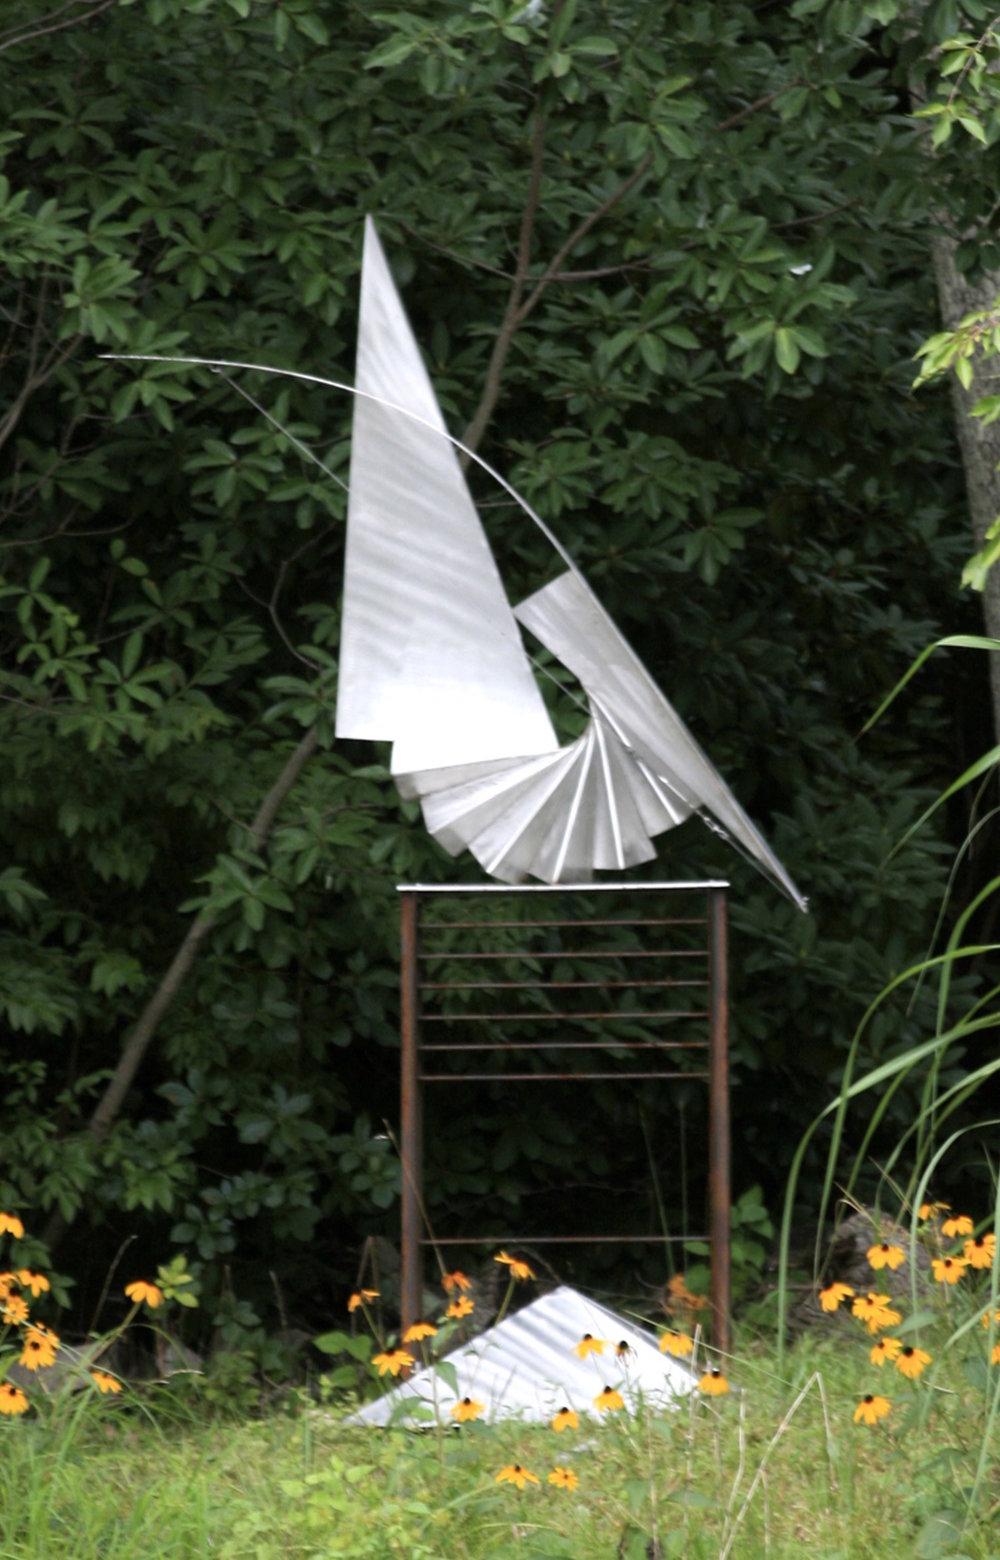 Saiph (Safe),  2007, stainless steel and waxed mild steel, 87 x 48 x 30